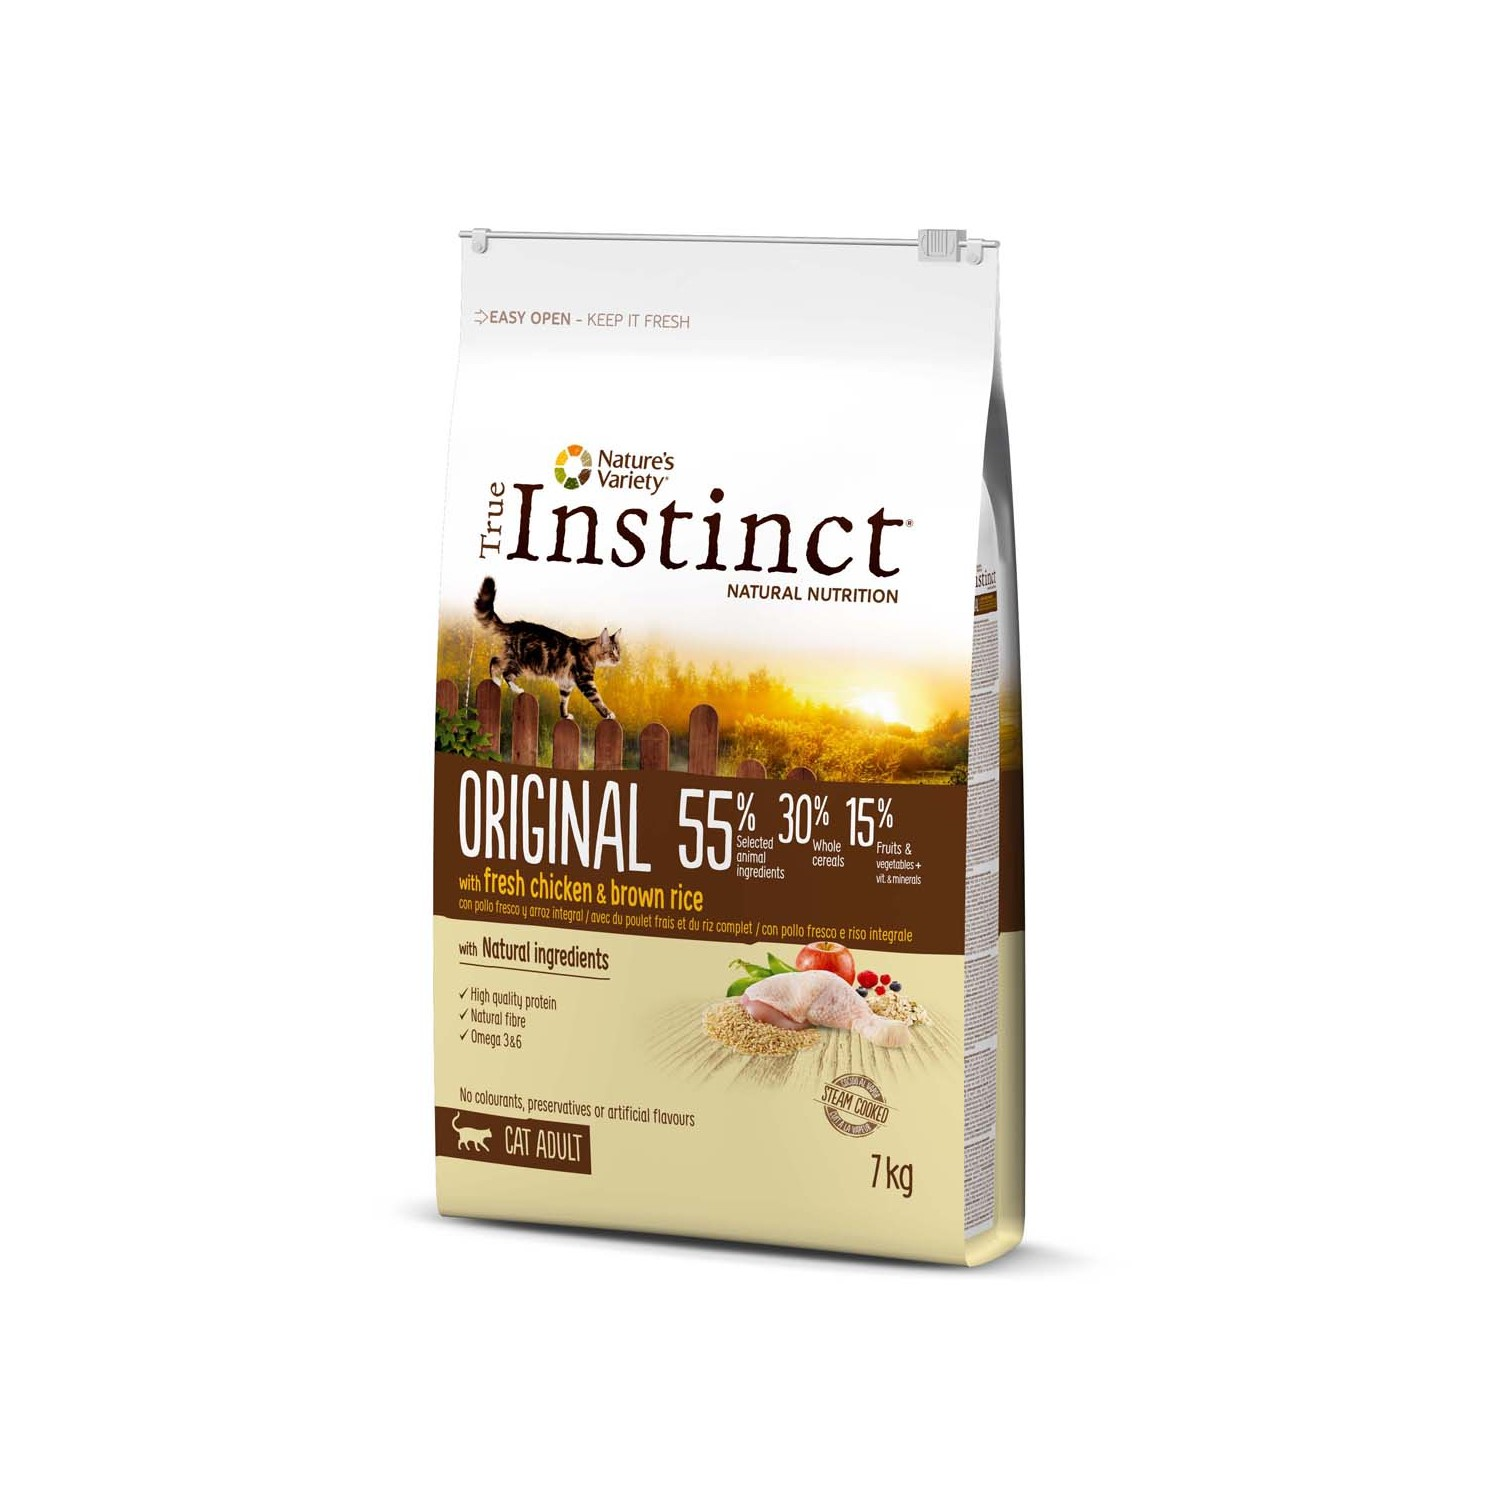 True Instinct original alimento natural gato adulto con pollo arroz envase de 7kg.